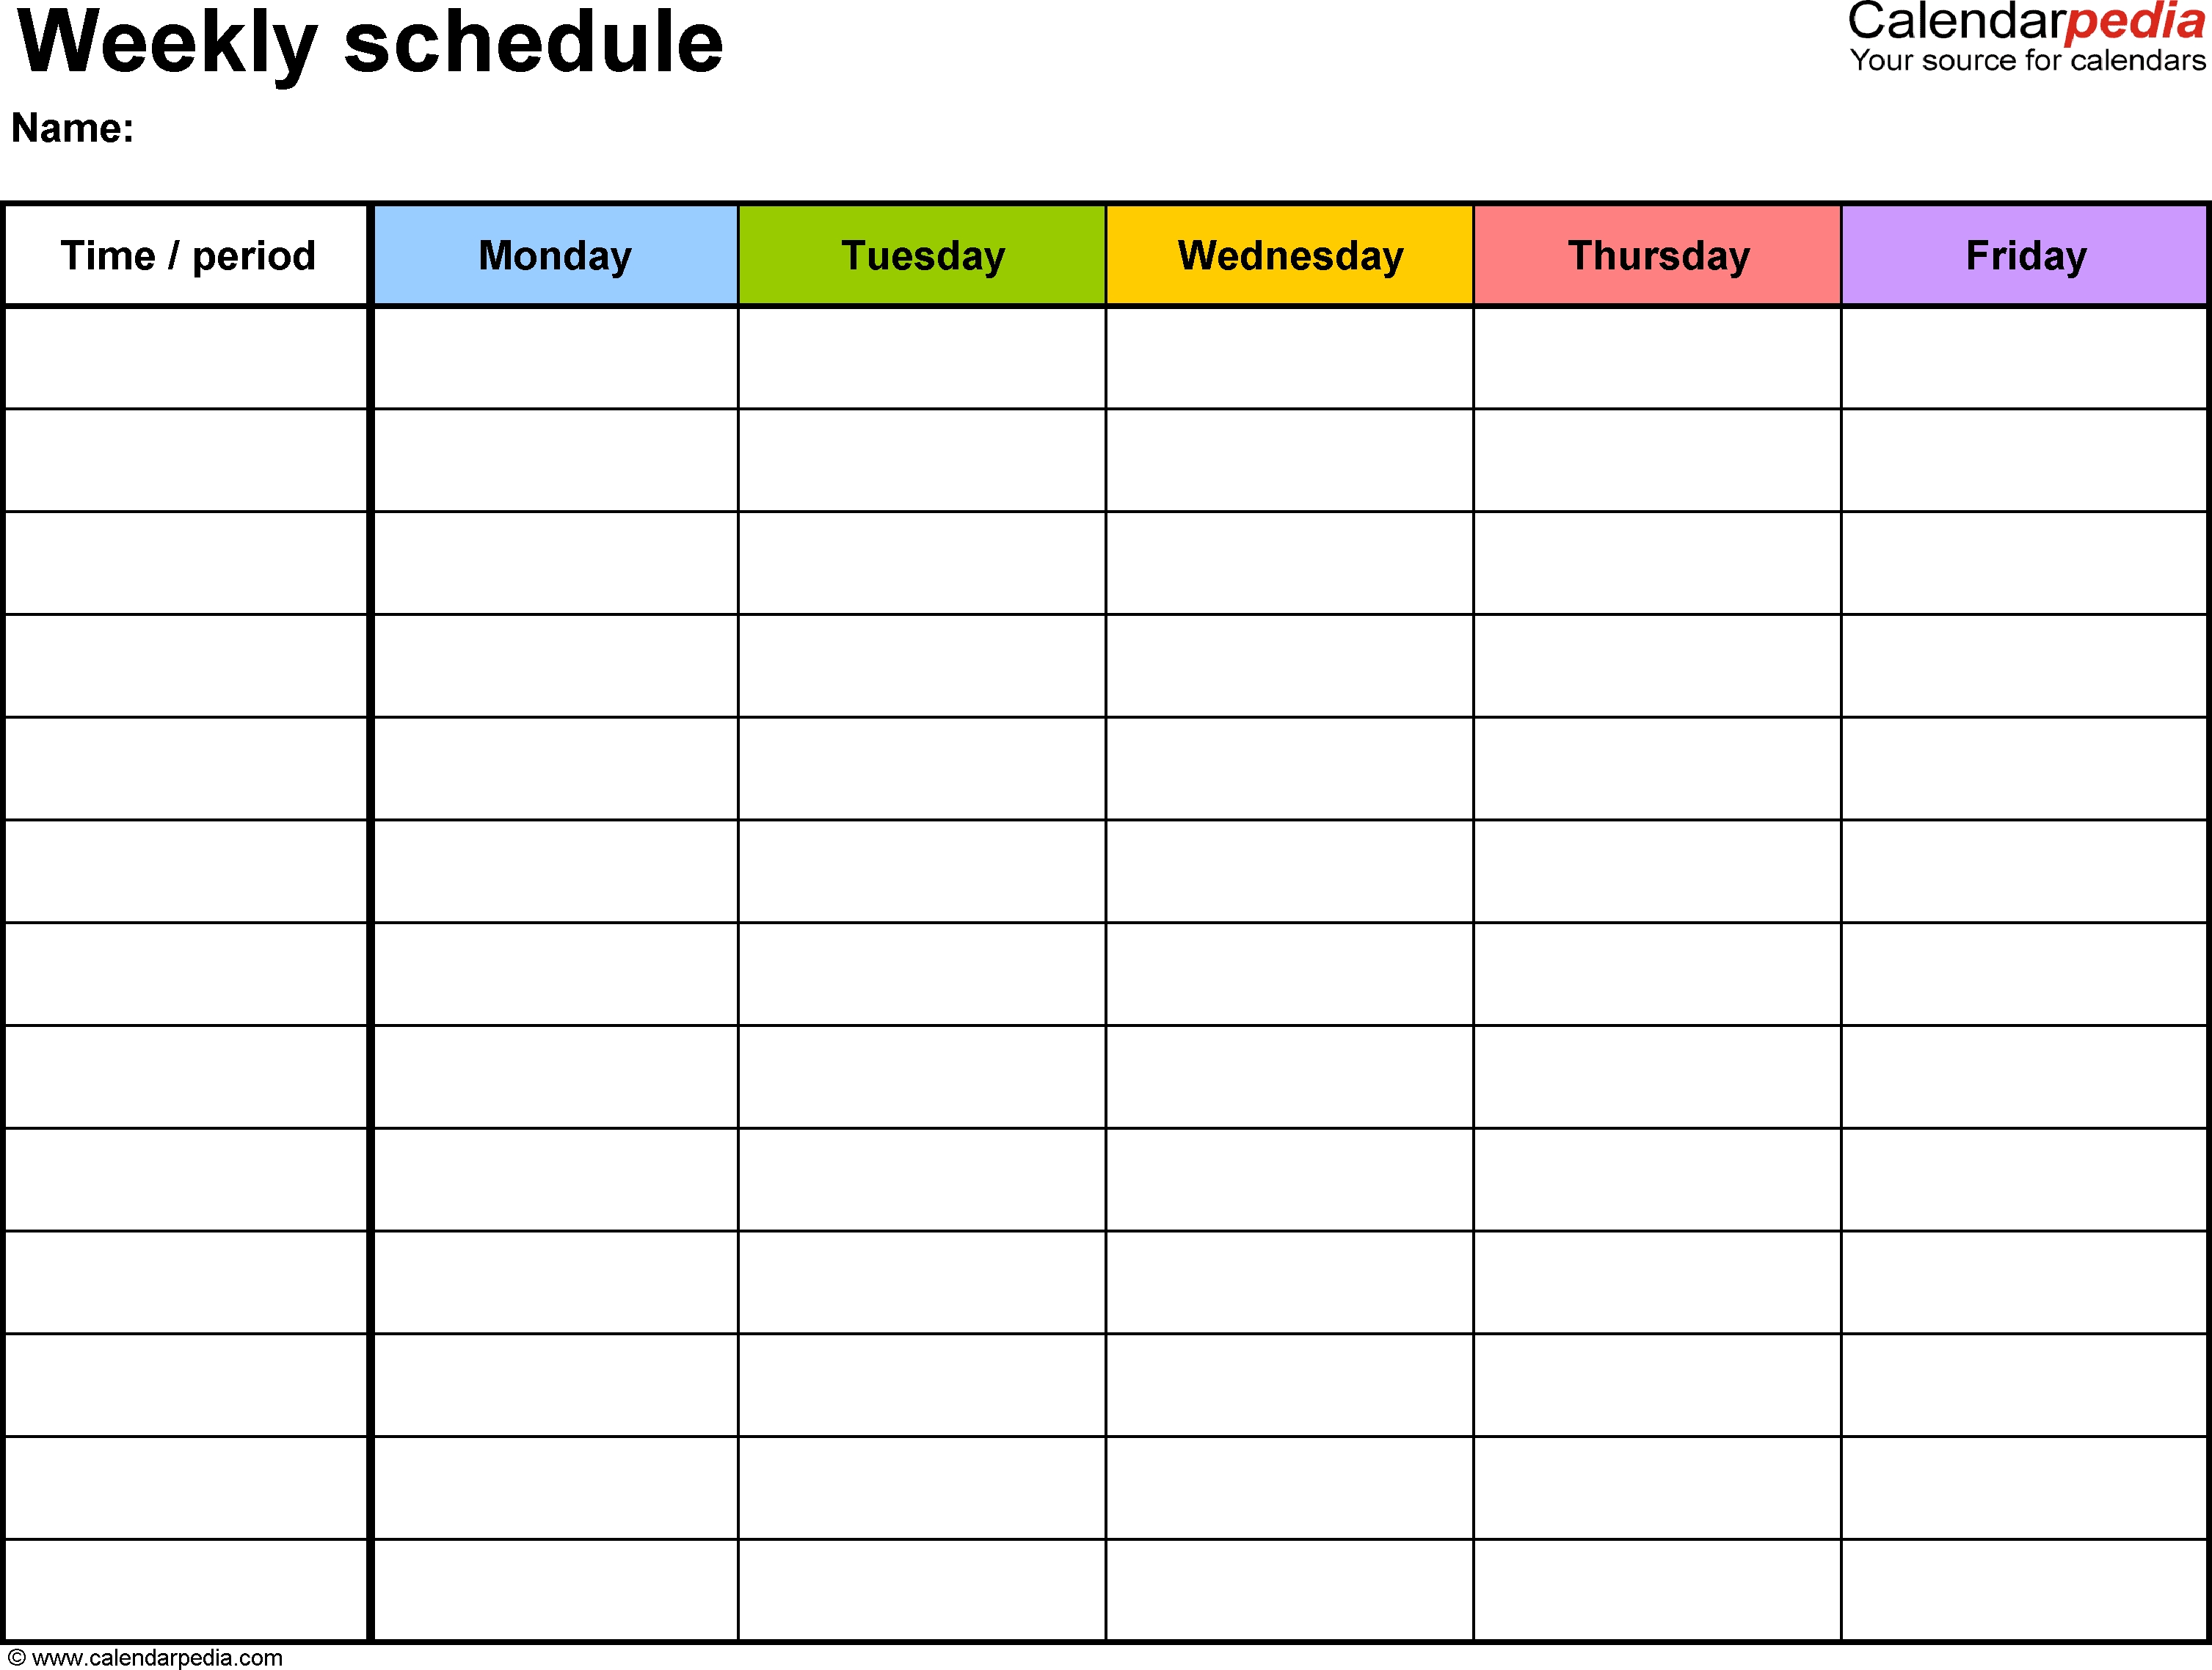 Weekly Schedule Template For Word Version 1: Landscape, 1 7 Day Calendar Template